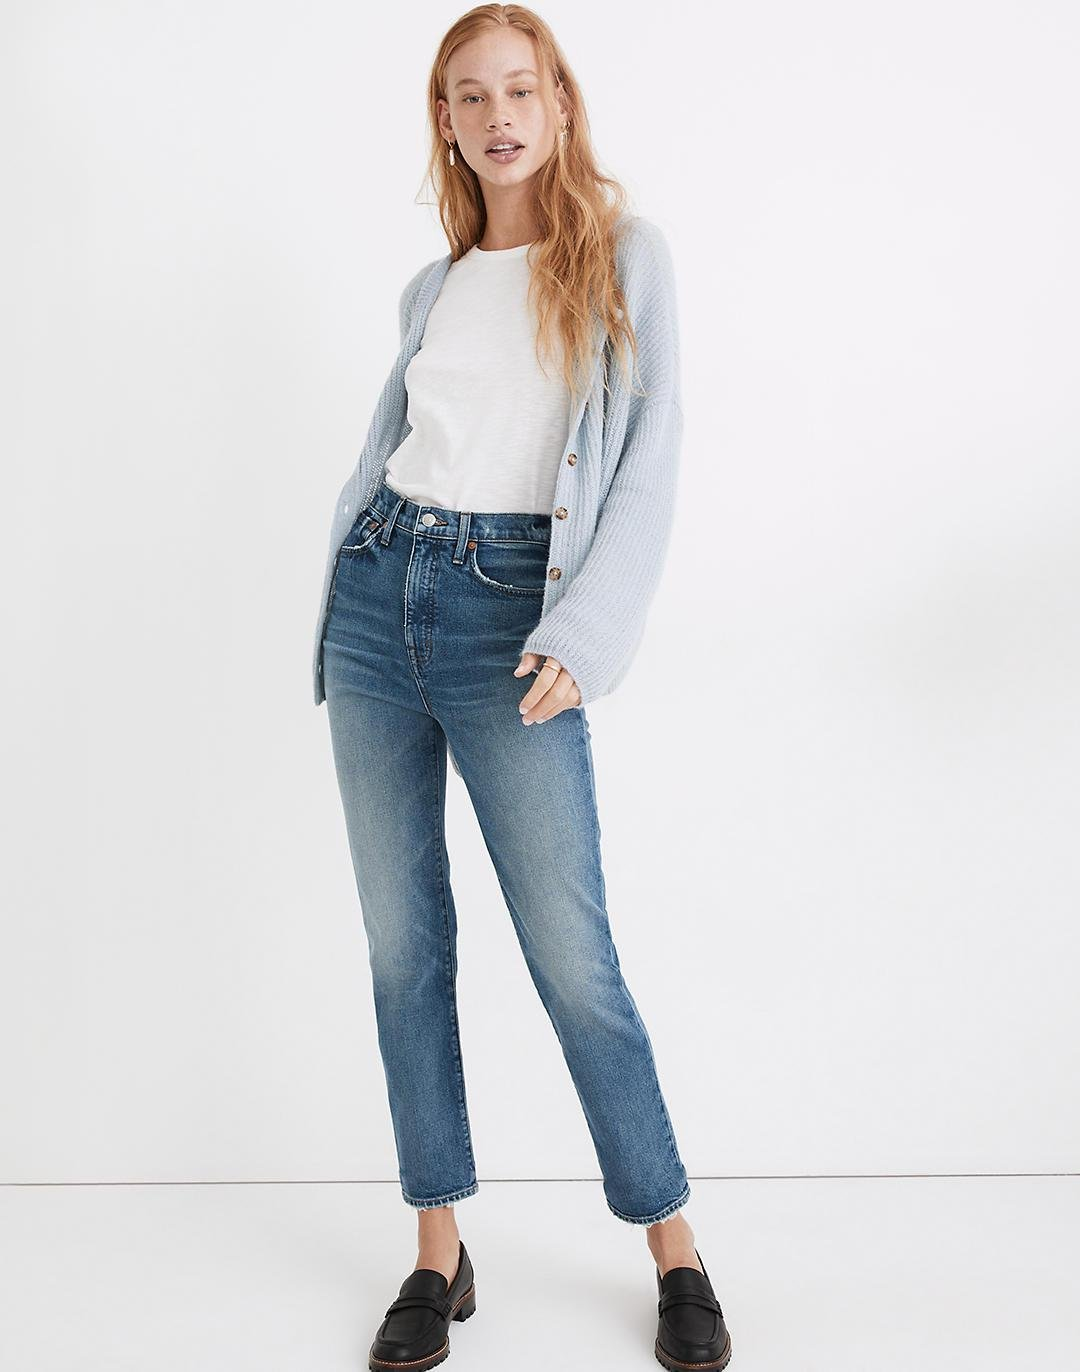 Rivet & Thread Perfect Vintage Jeans in Newkirk Wash